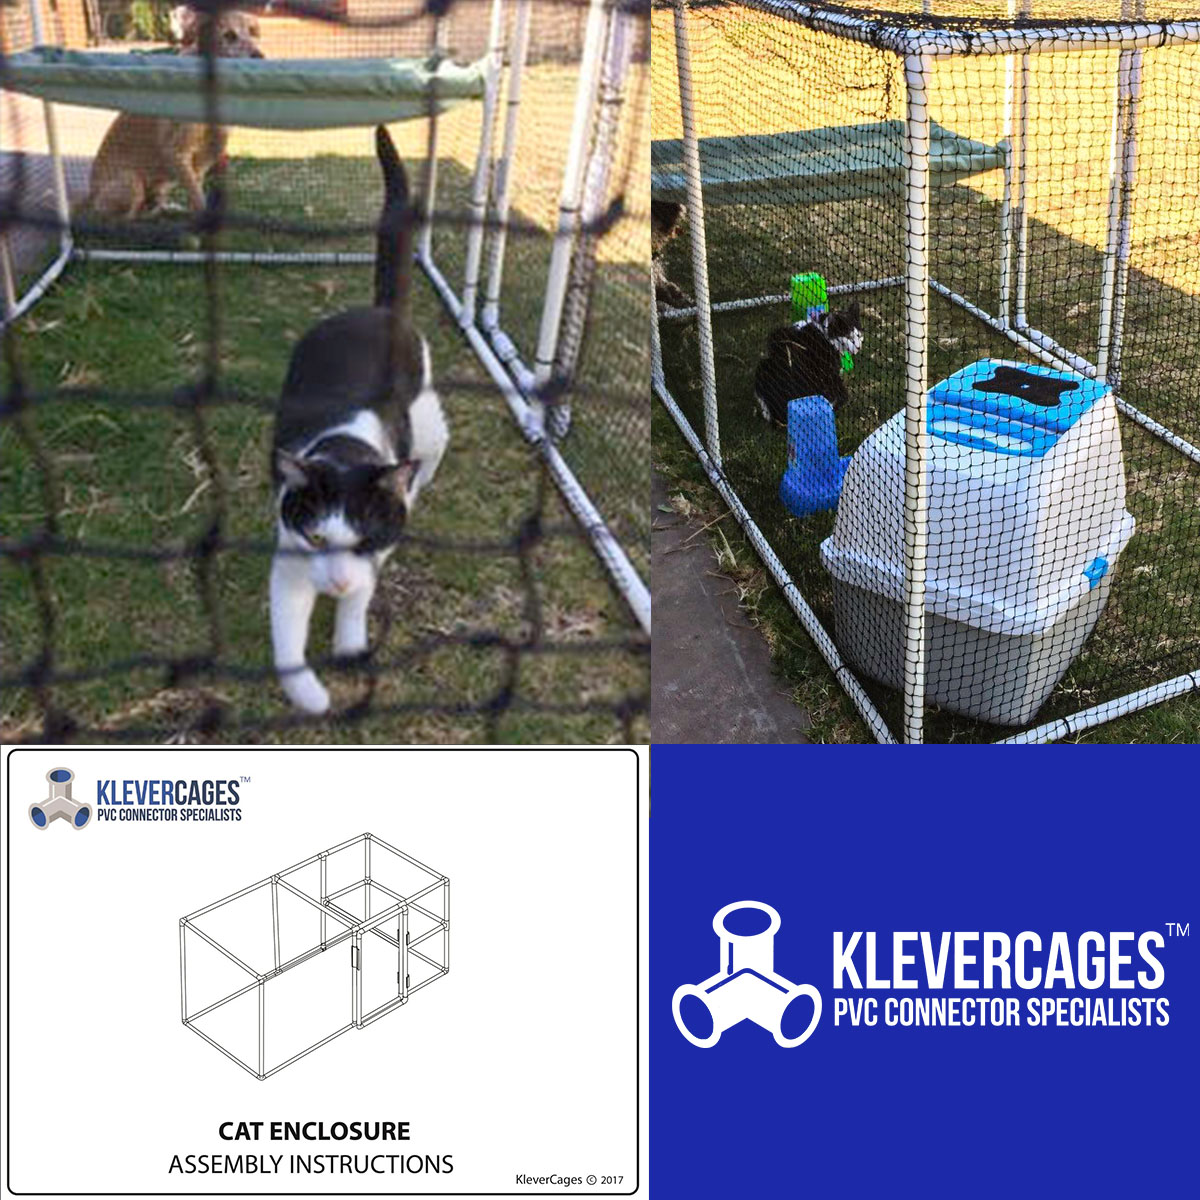 Klever Cages cat enclosure kit built from PVC connectors and pipe outdoors on the grass with Rocket inspecting it and also a dog in the background. Picture of the free PVC plans available to make the assembly of the Klever Cages cat enclosure kit easy to assemble.